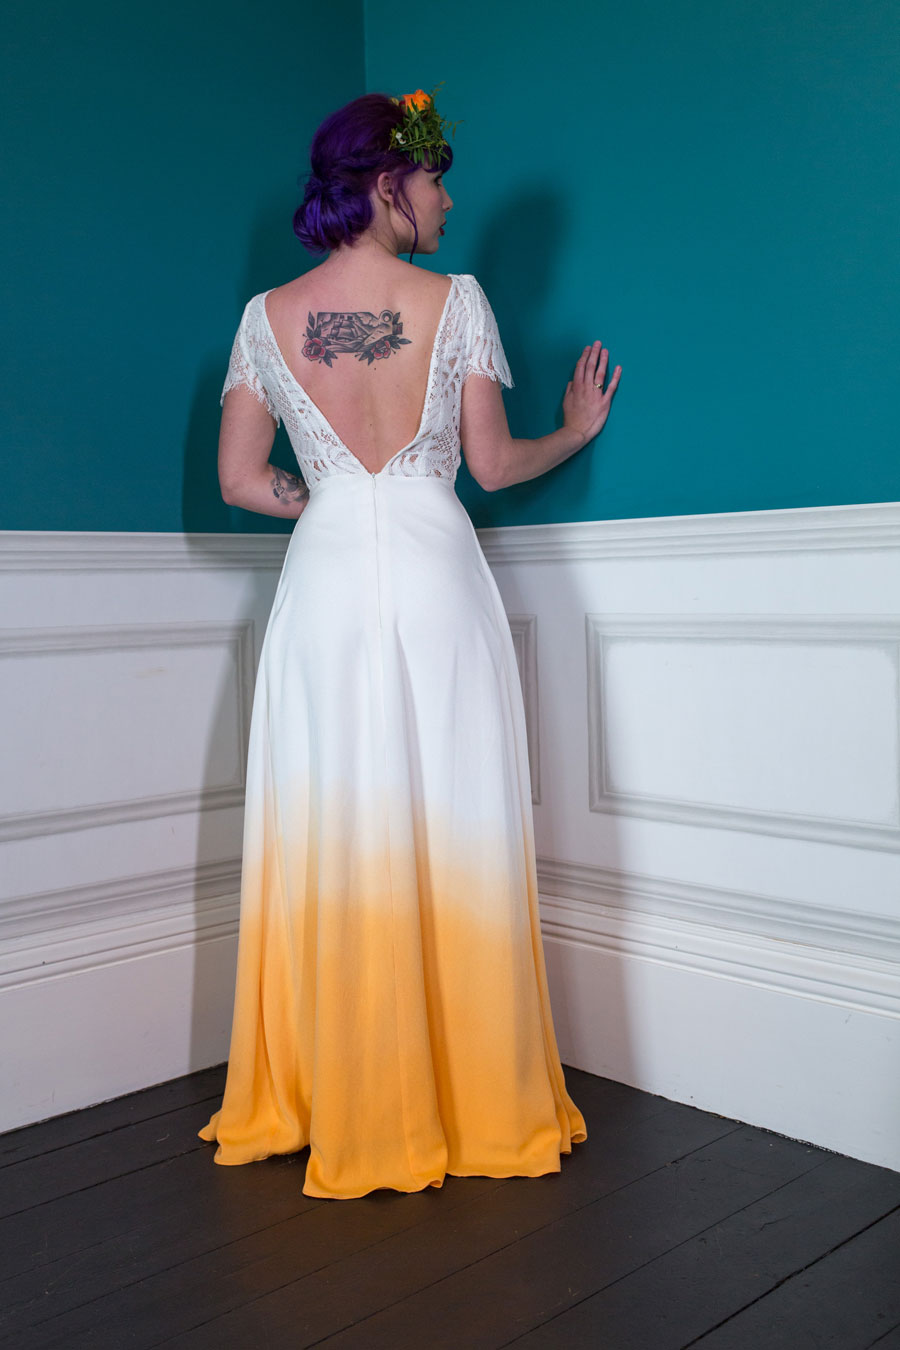 Colourful Amp Quirky Wedding Dresses For Non Traditional Brides Lucy Cant Dance